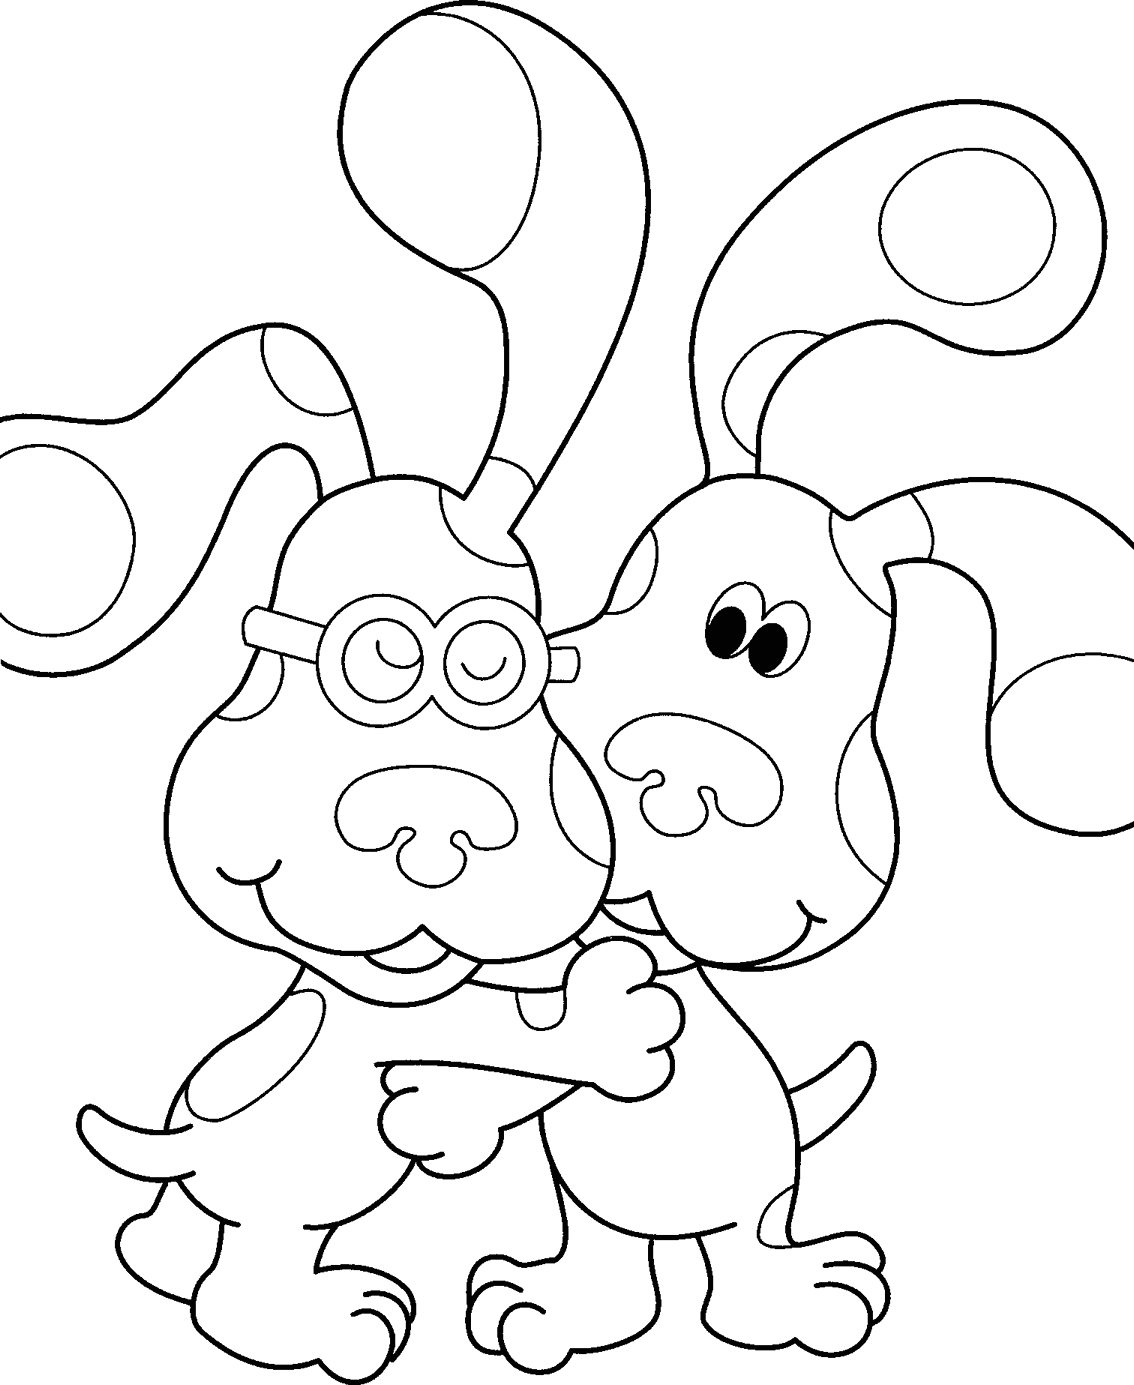 Nick Jr Coloring Pages to Print Out Nick Jr Coloring Pages 6